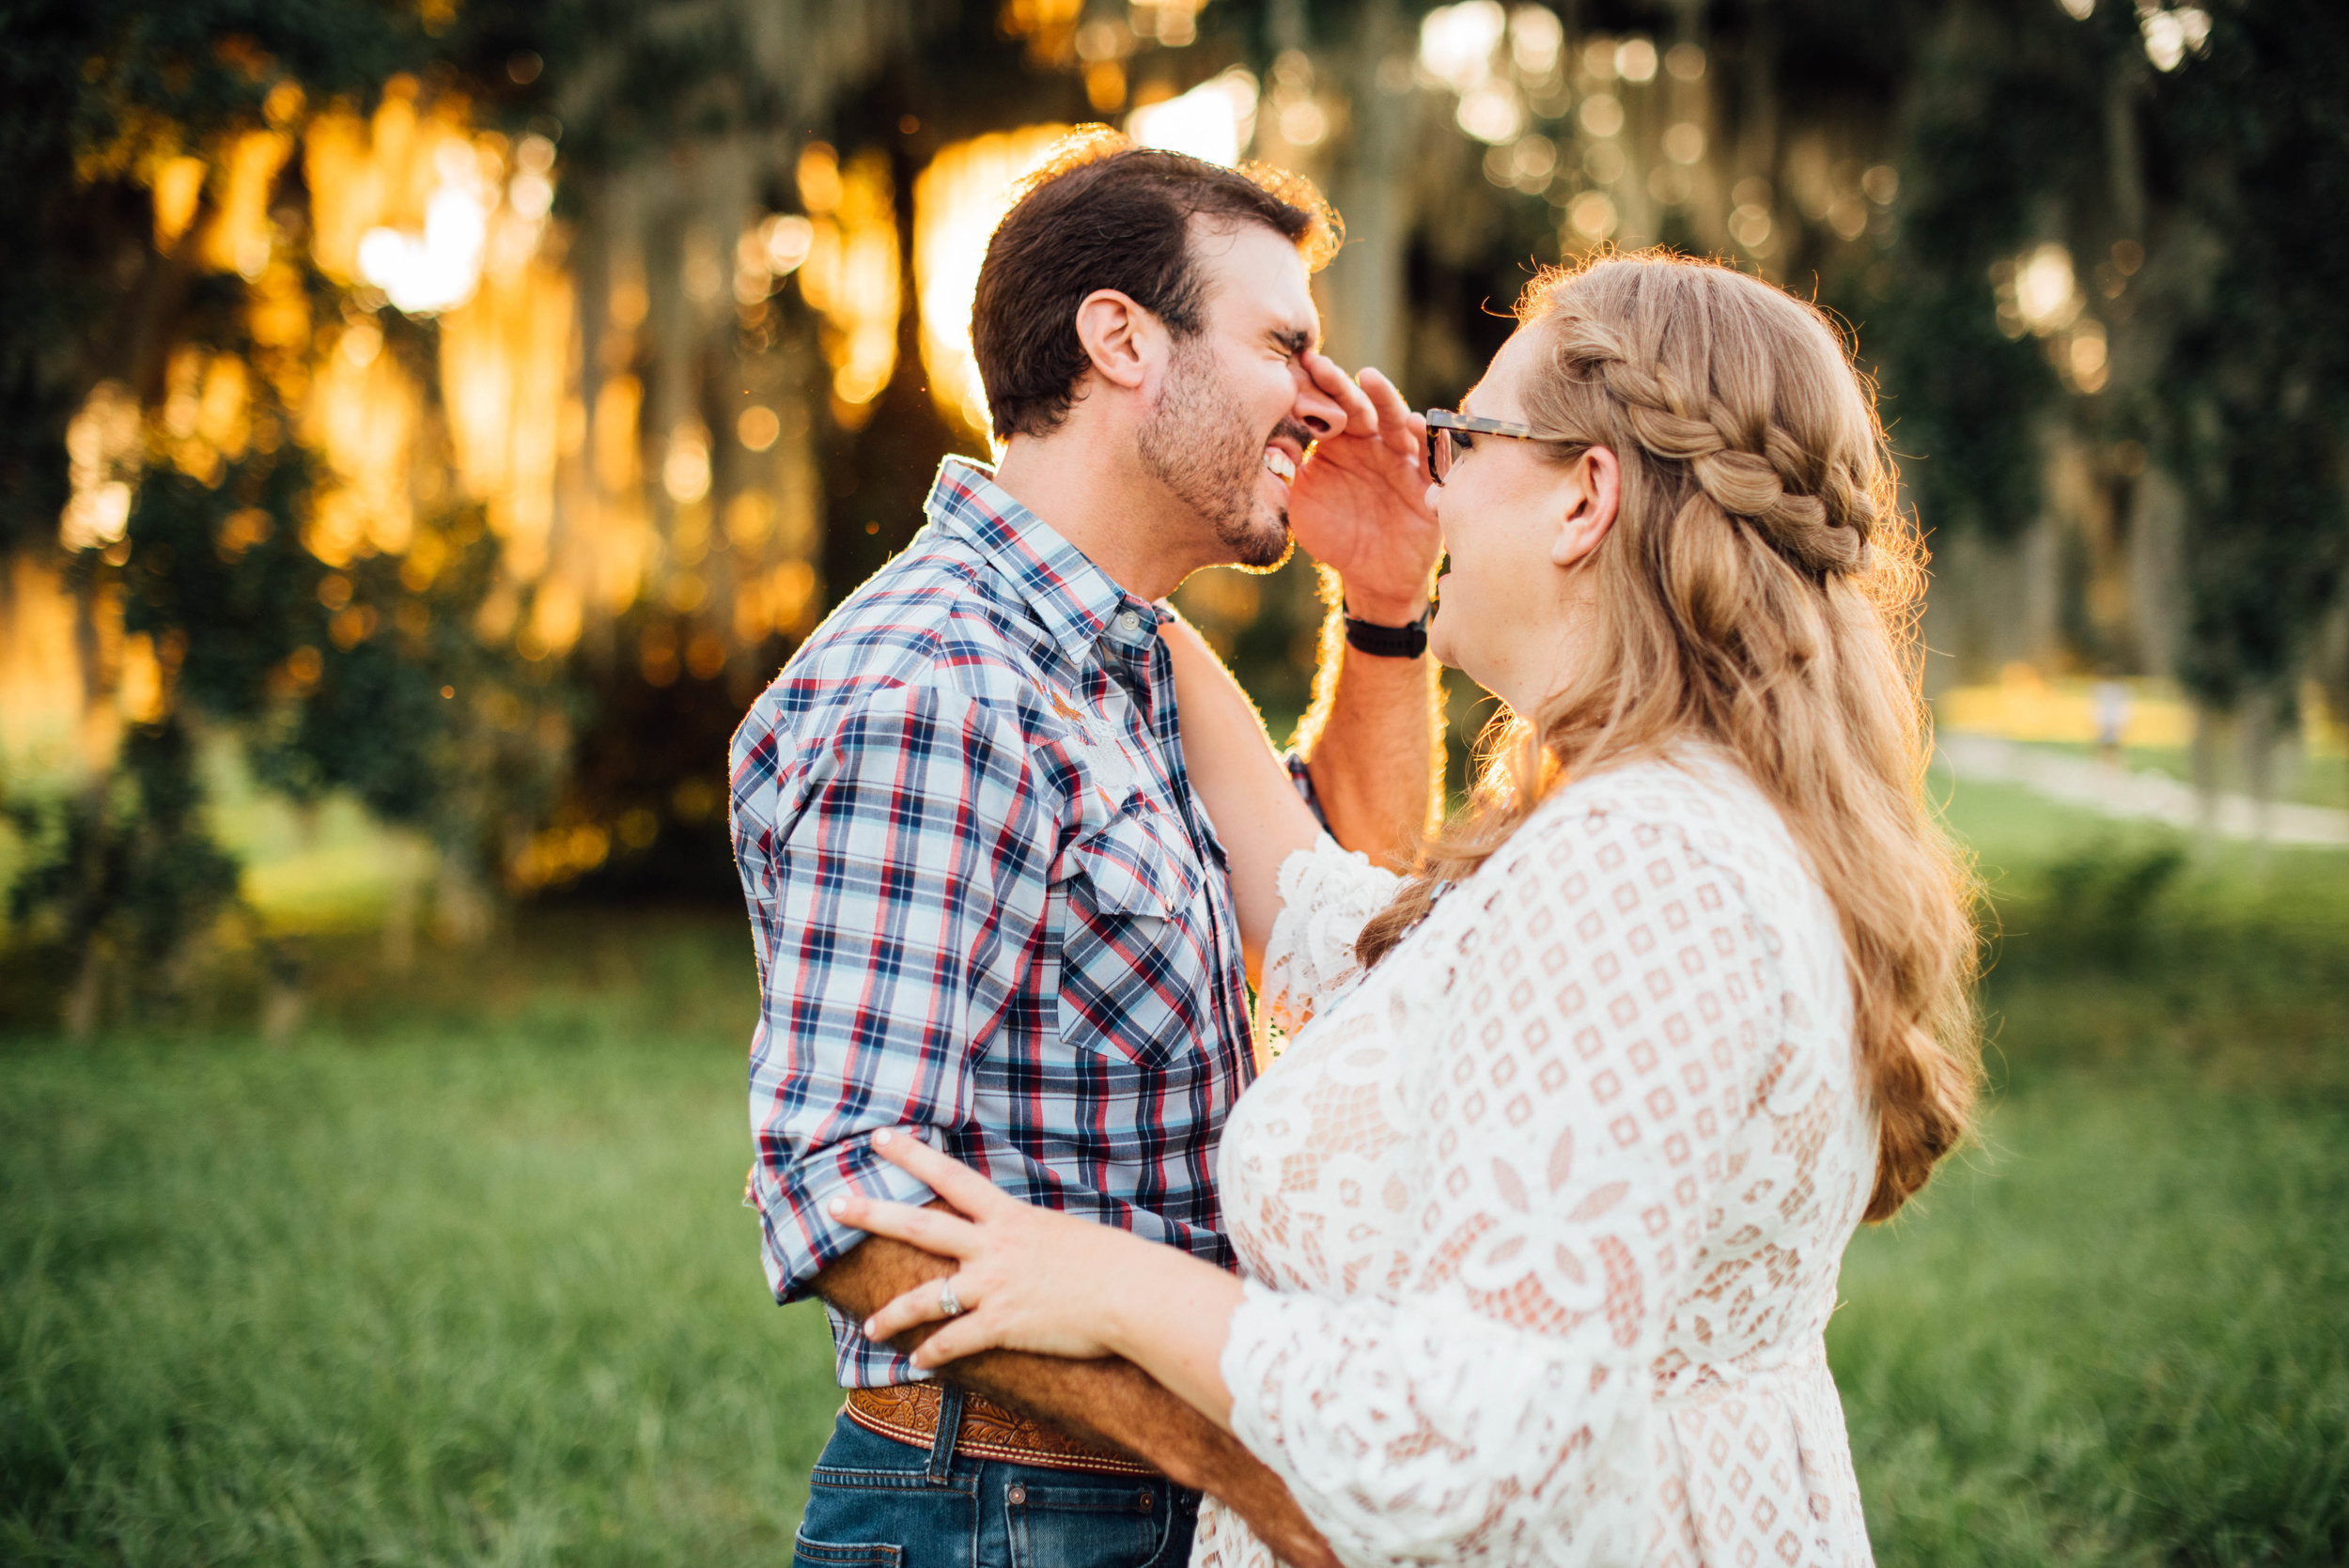 Jordan + Kent_French-Quarter-New-Orleans-City-Park-Engagement-Photos_Gabby Chapin_Print_0166.jpg